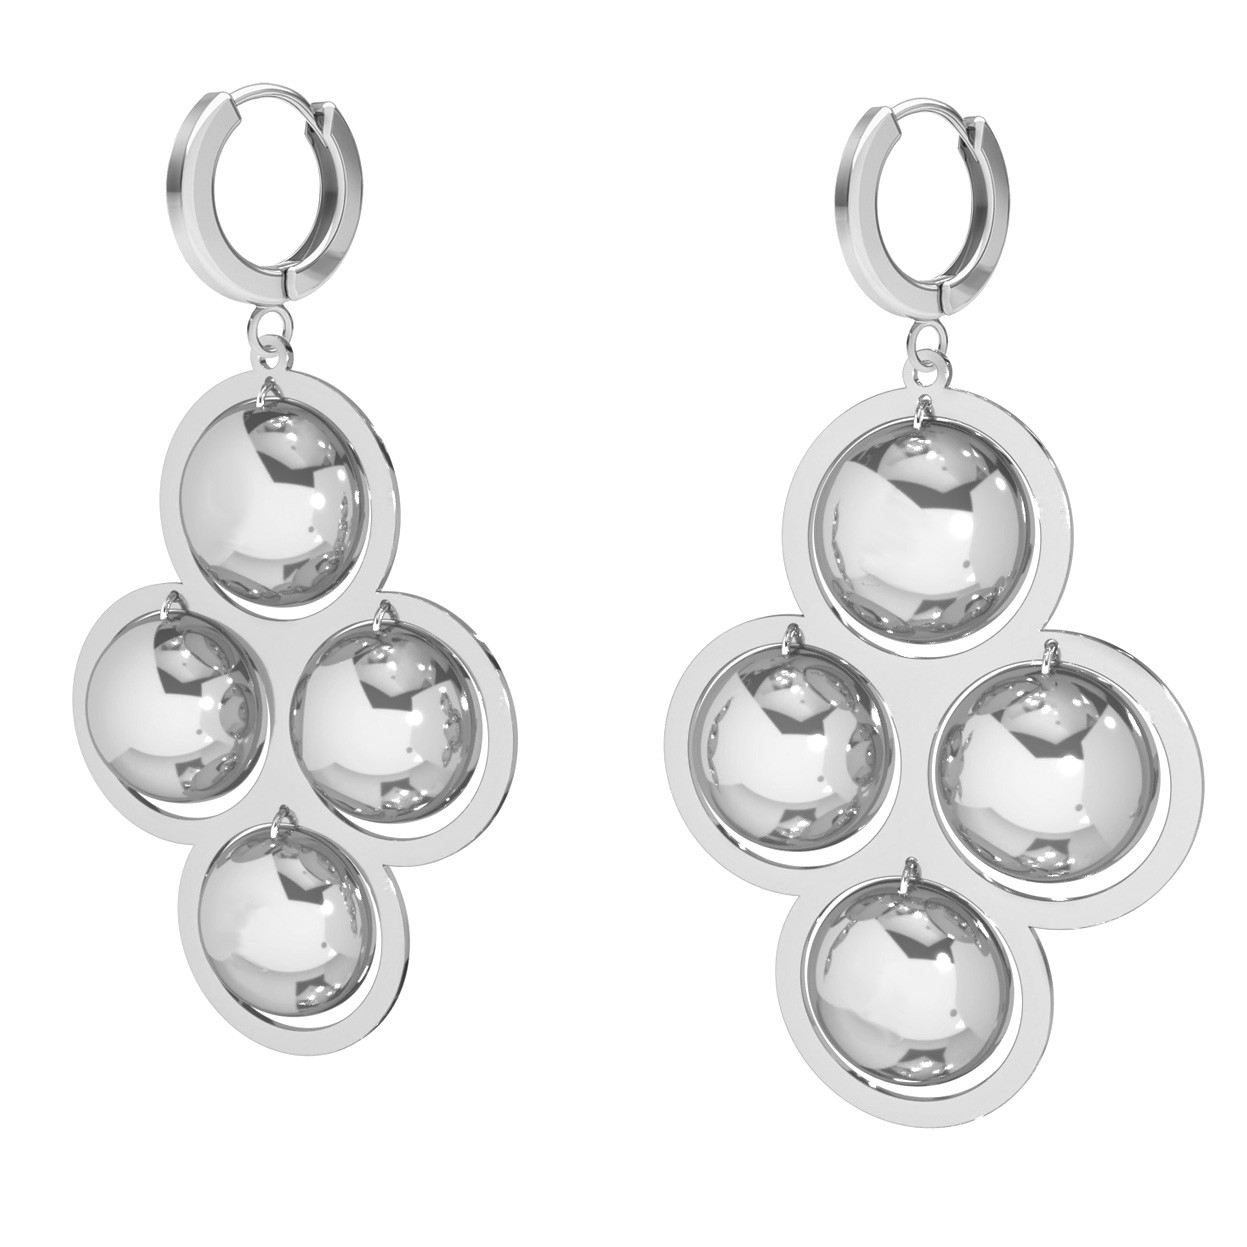 Long round earrings sterling silver 925